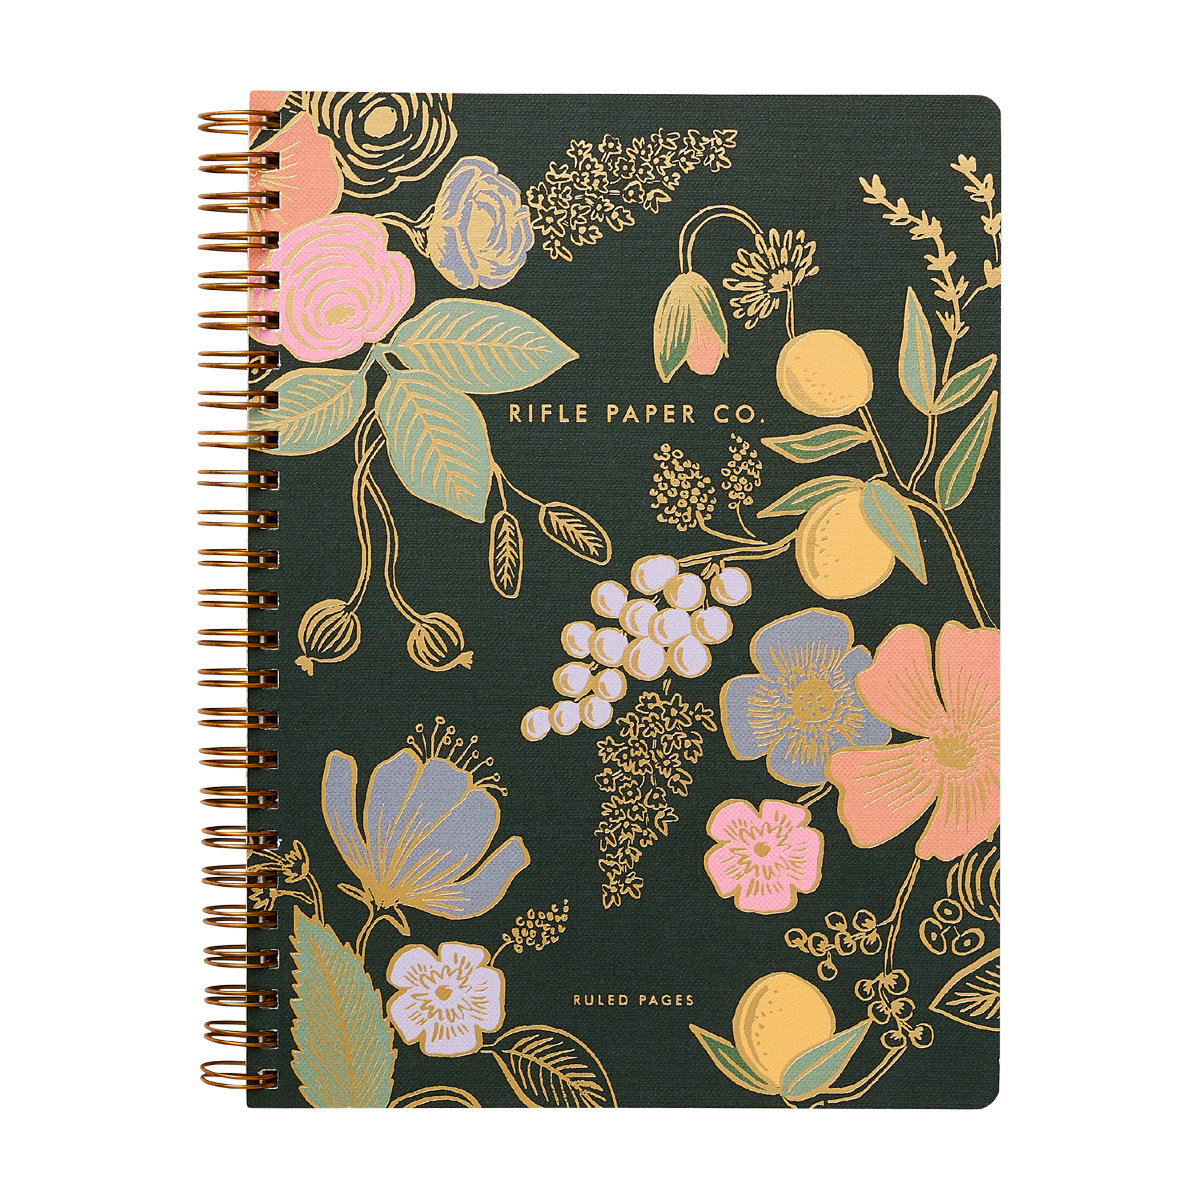 Rifle Paper Co. Colette Spiral Notebook